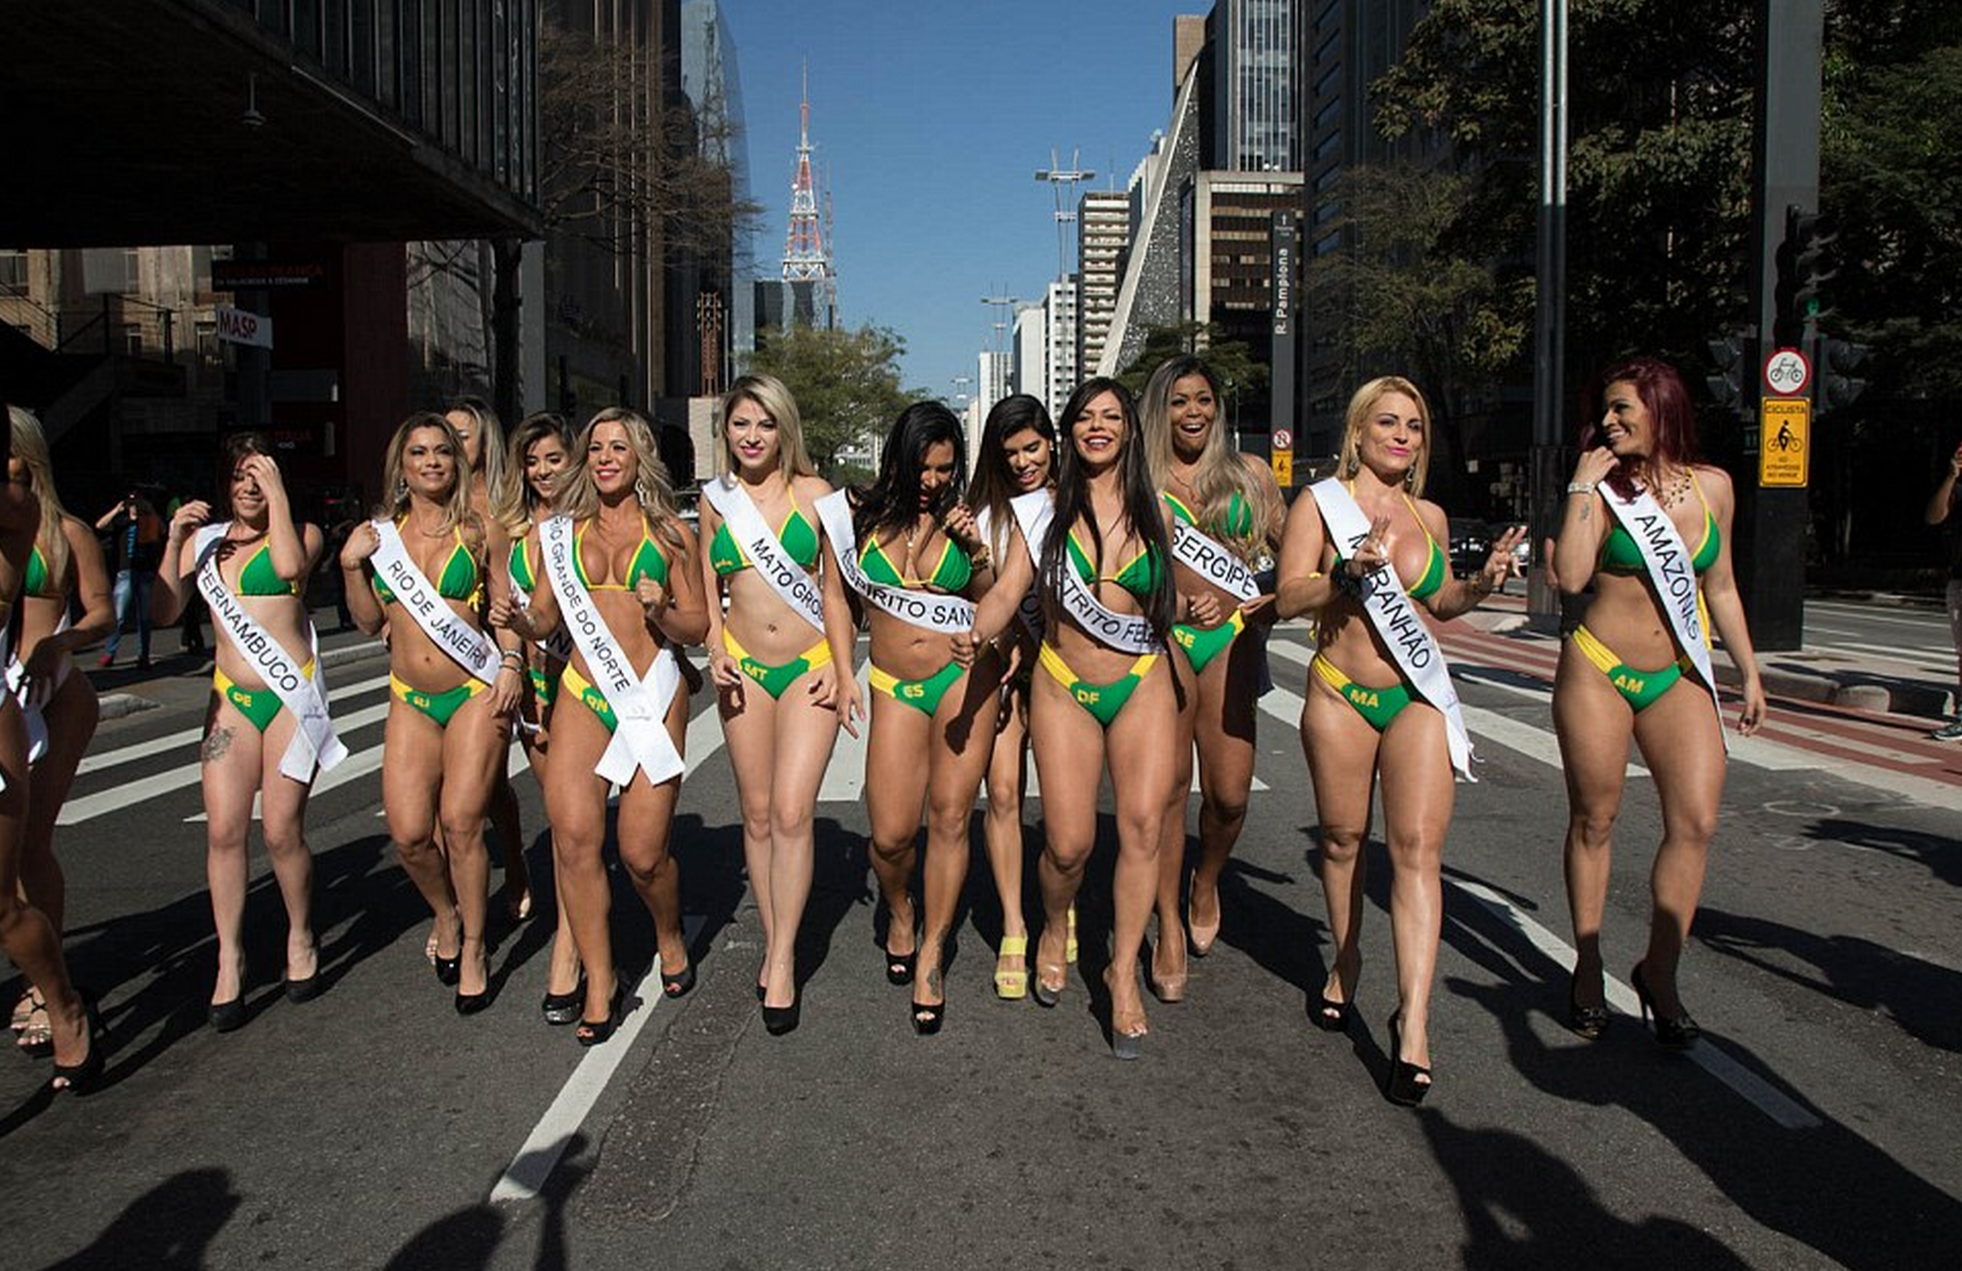 IRqJVgLcy Brazilian Miss Bum Bum Contestants Cause Chaos On Streets Of Sao Paulo